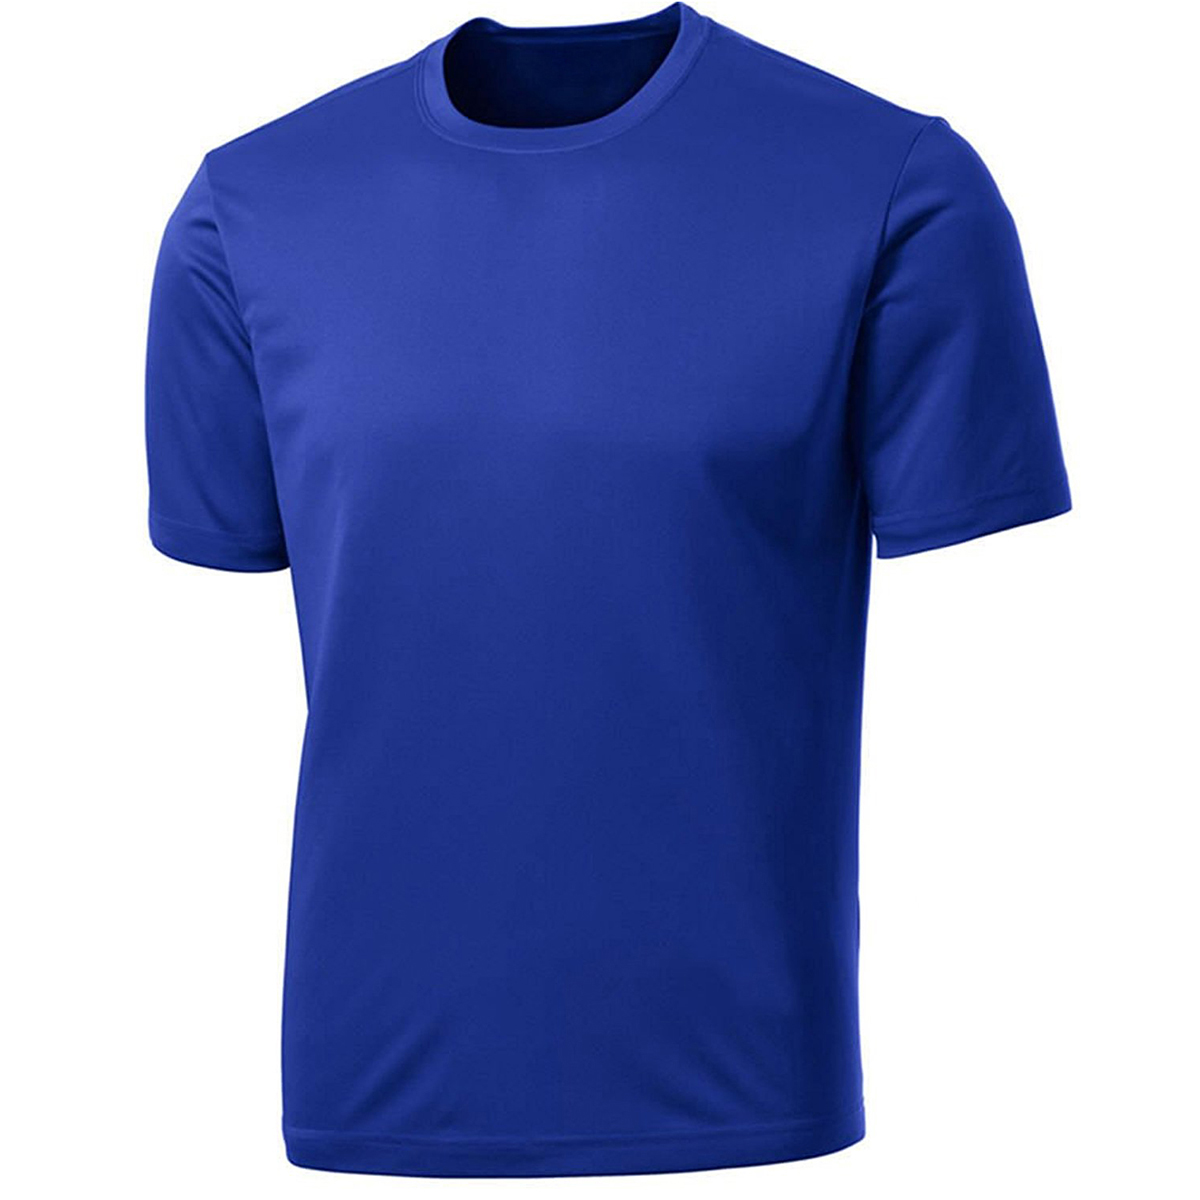 2 Dodger Men S Dry Fit Performance T Shirts Moisture